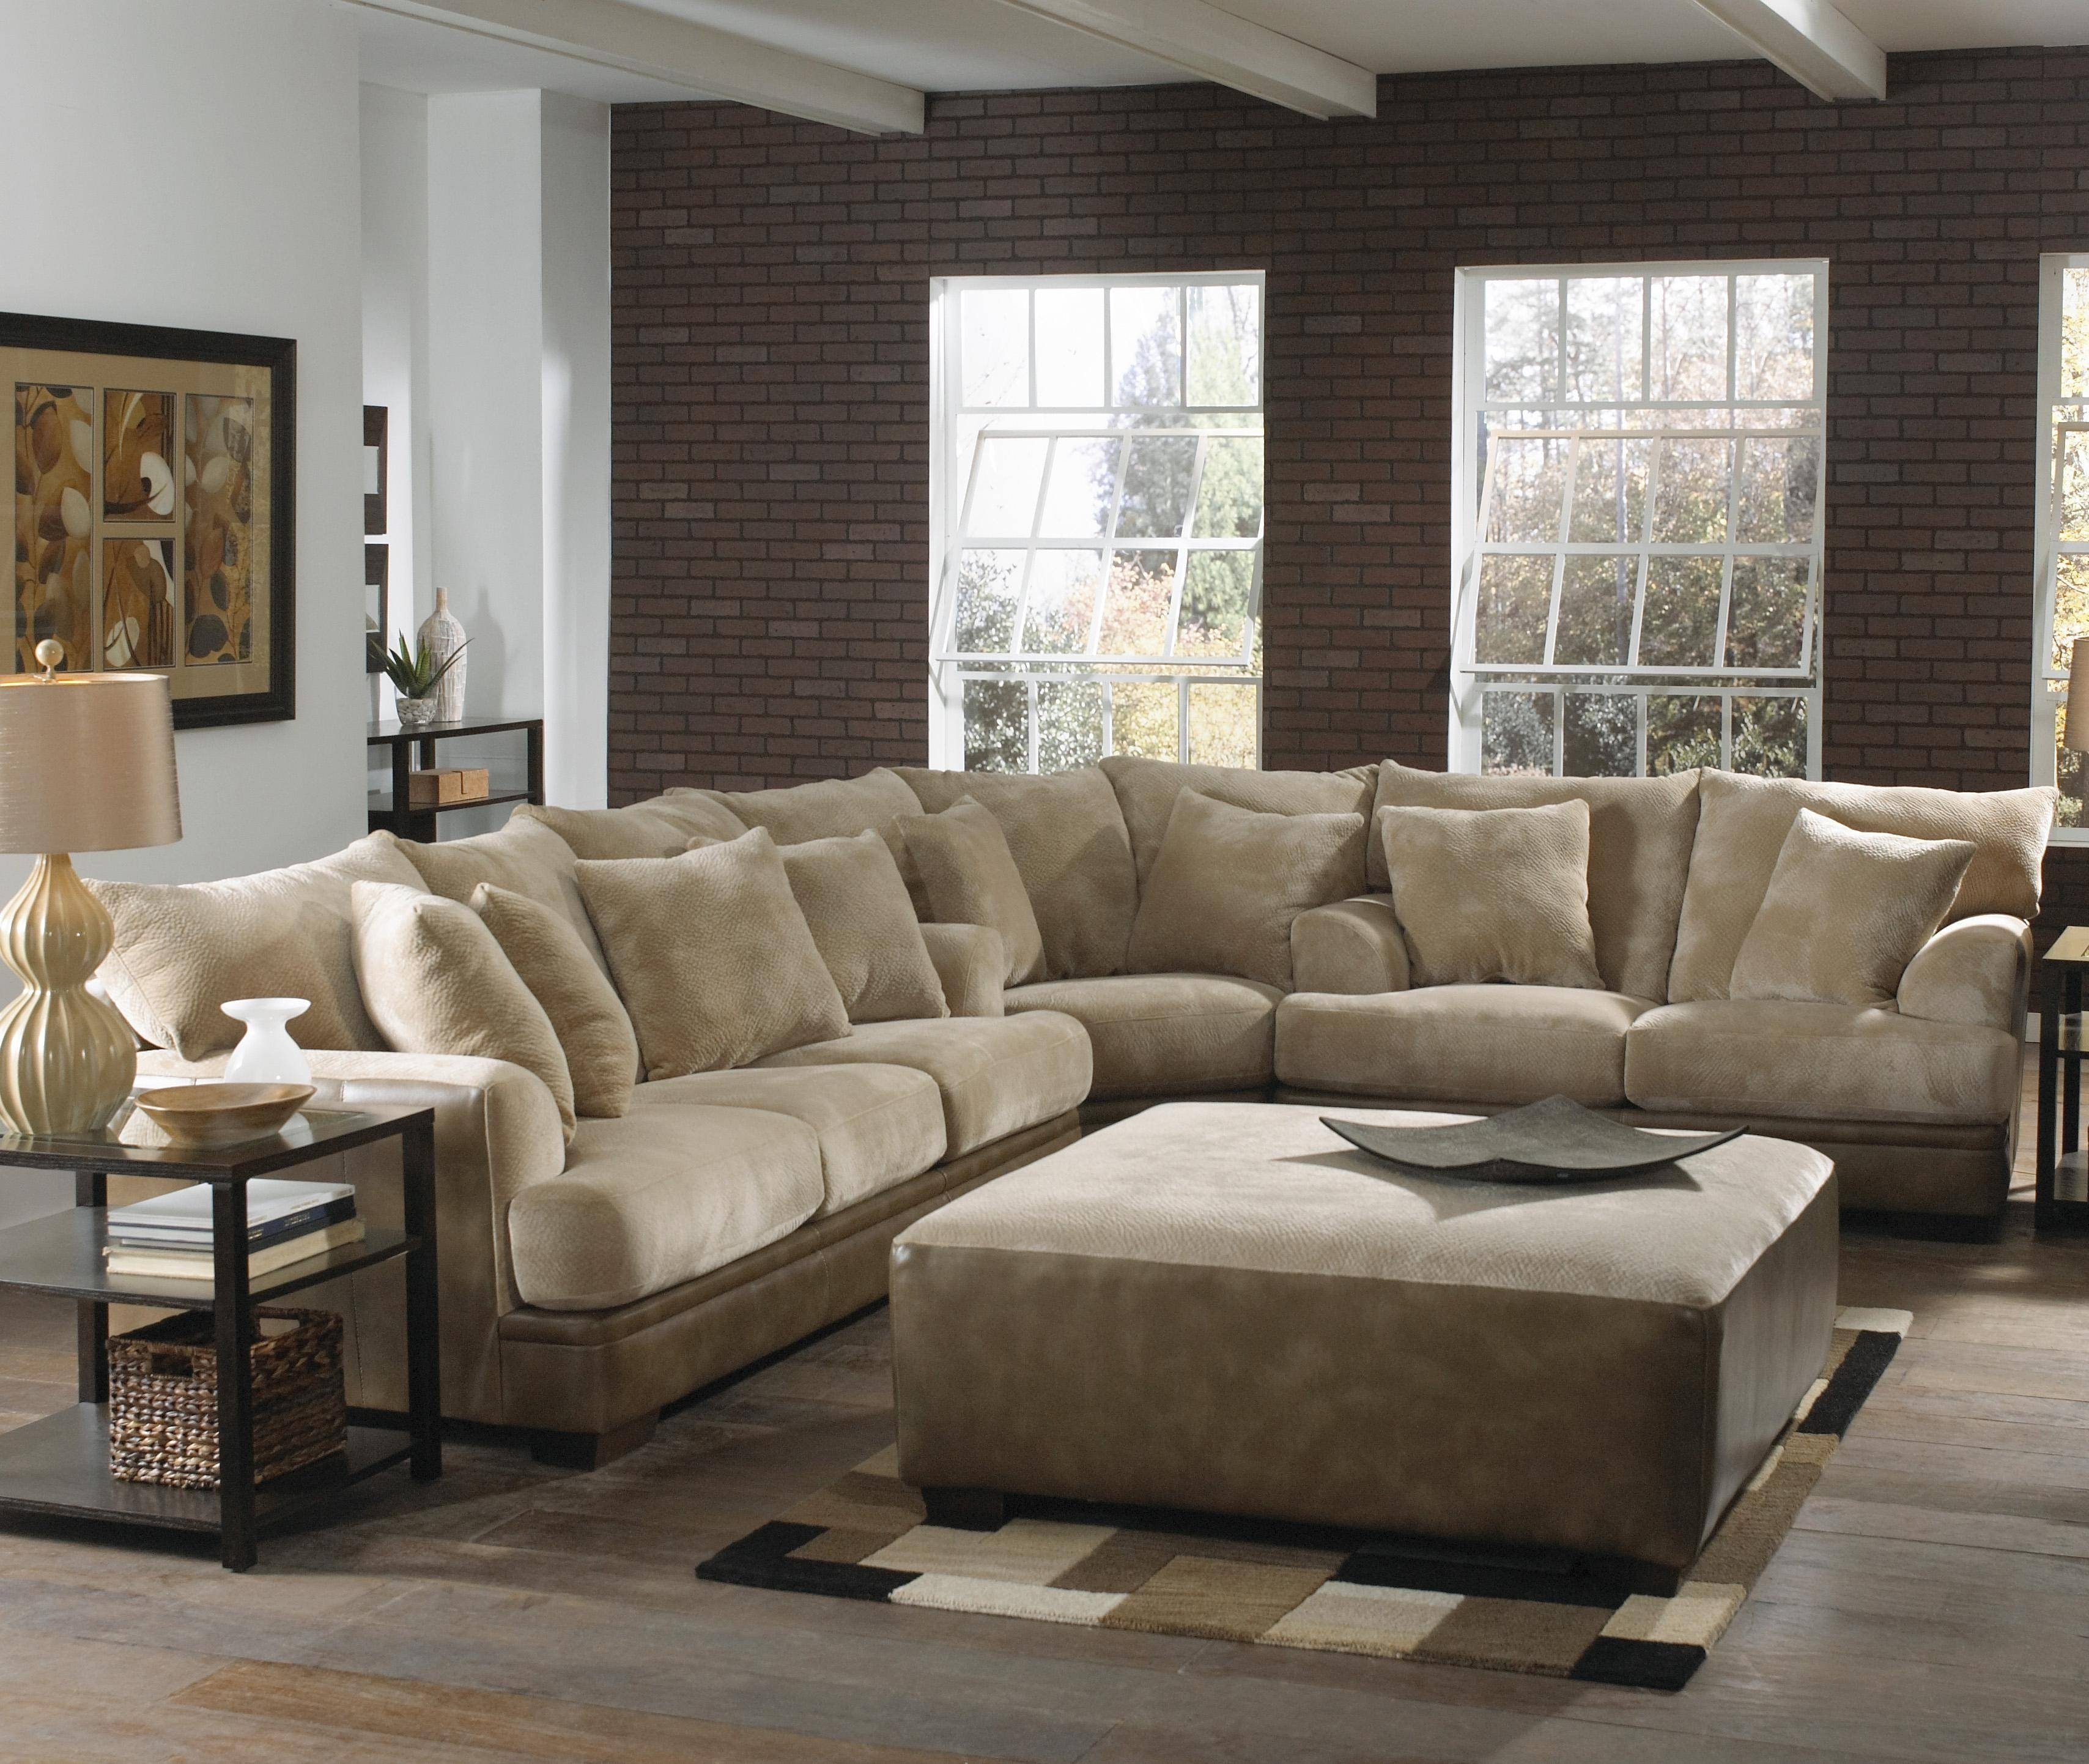 Chairs : Chairs Staggering Oversized Comfy Chair Sectional Sofas With Grand Furniture Sectional Sofas (View 4 of 10)